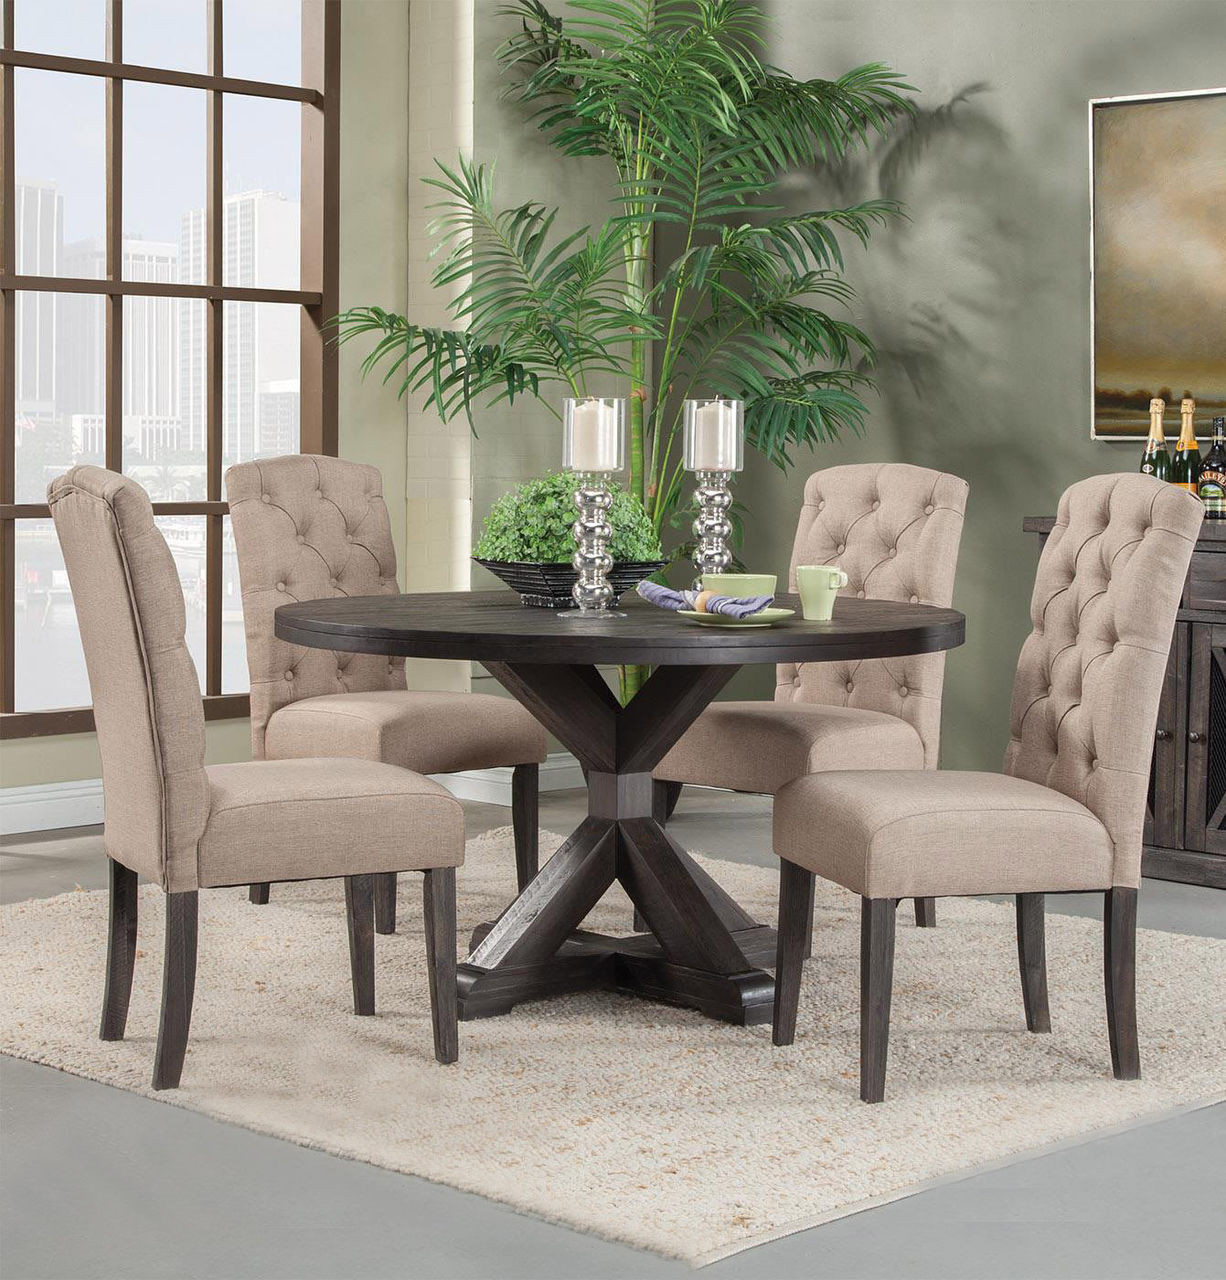 "Dining Set Round Table: Alpine Newberry 54"" Round Dining Room Table Set In"